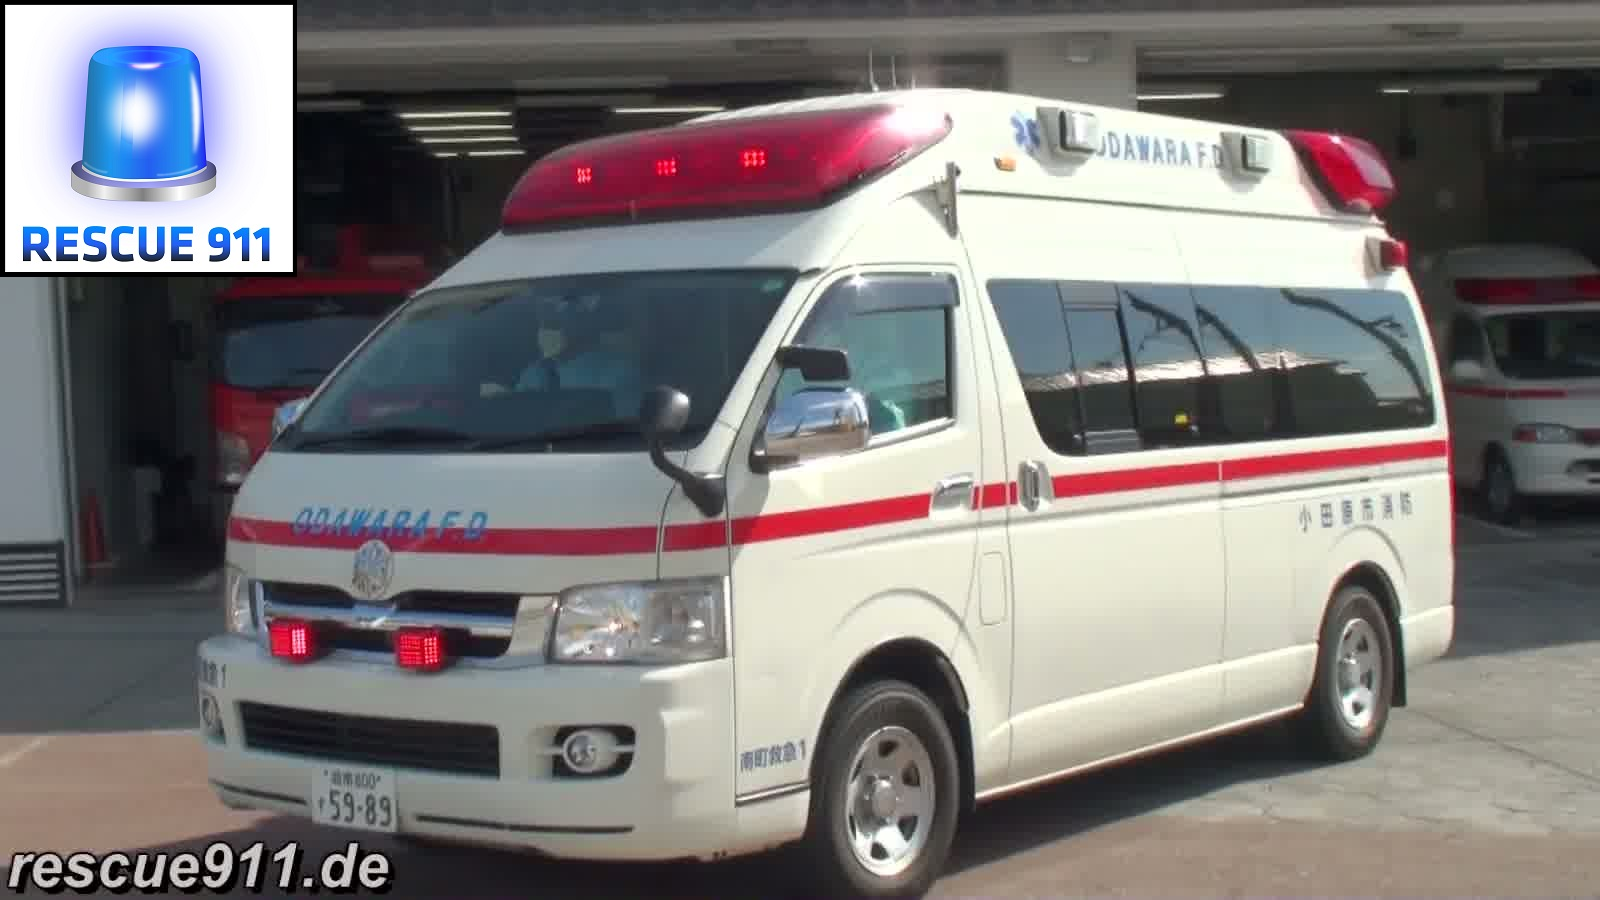 Ambulance Odawara Fire Department (stream)